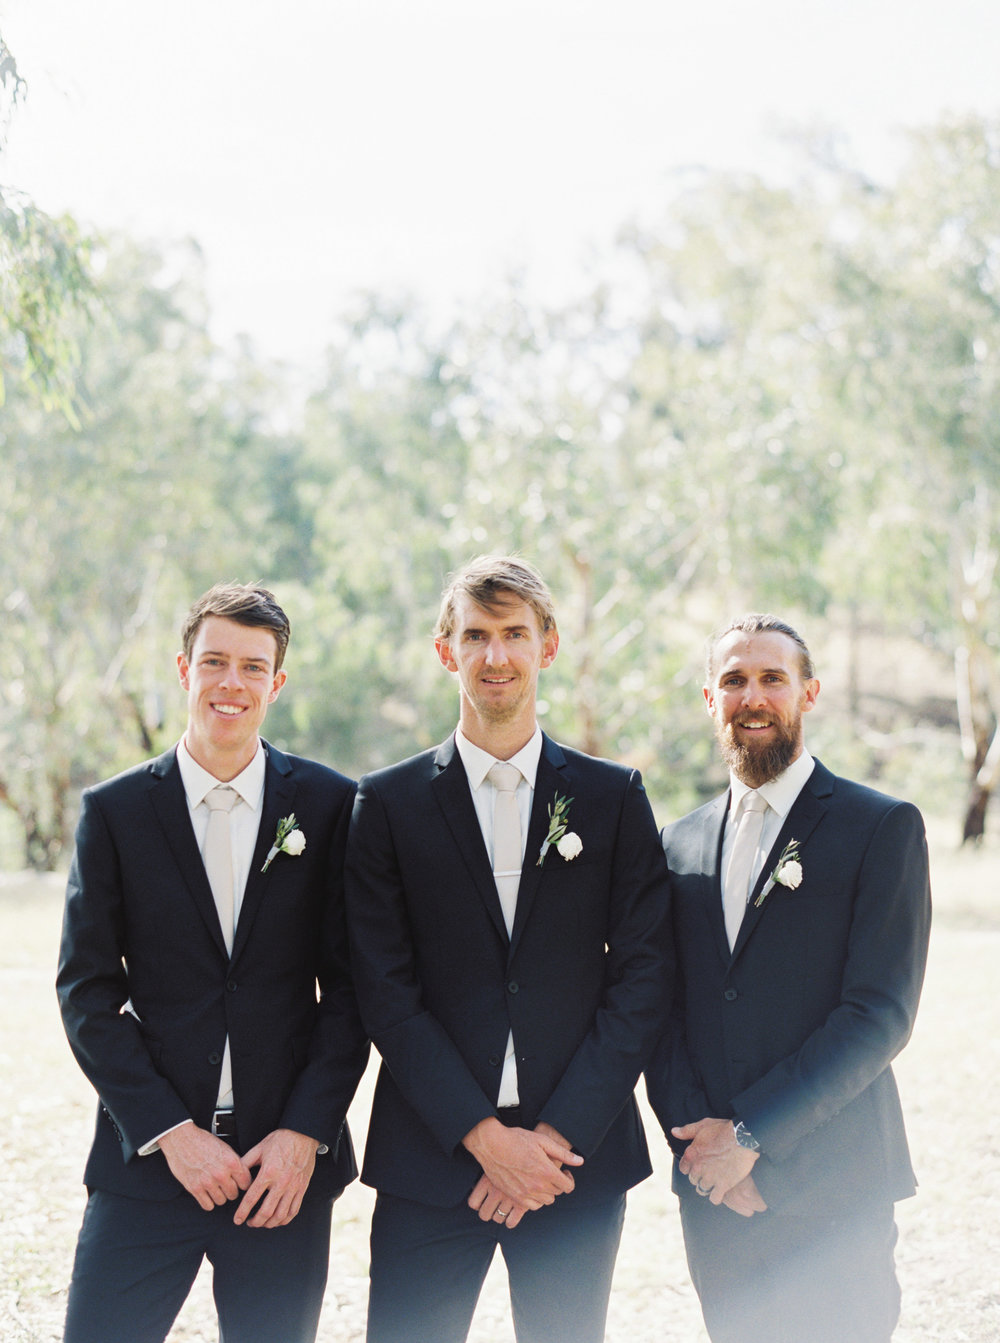 00040- Olive Tree Mediterranean Wedding in Mudgee NSW Australia Fine Art Film Wedding Lifestyle Photographer Sheri McMahon_.jpg